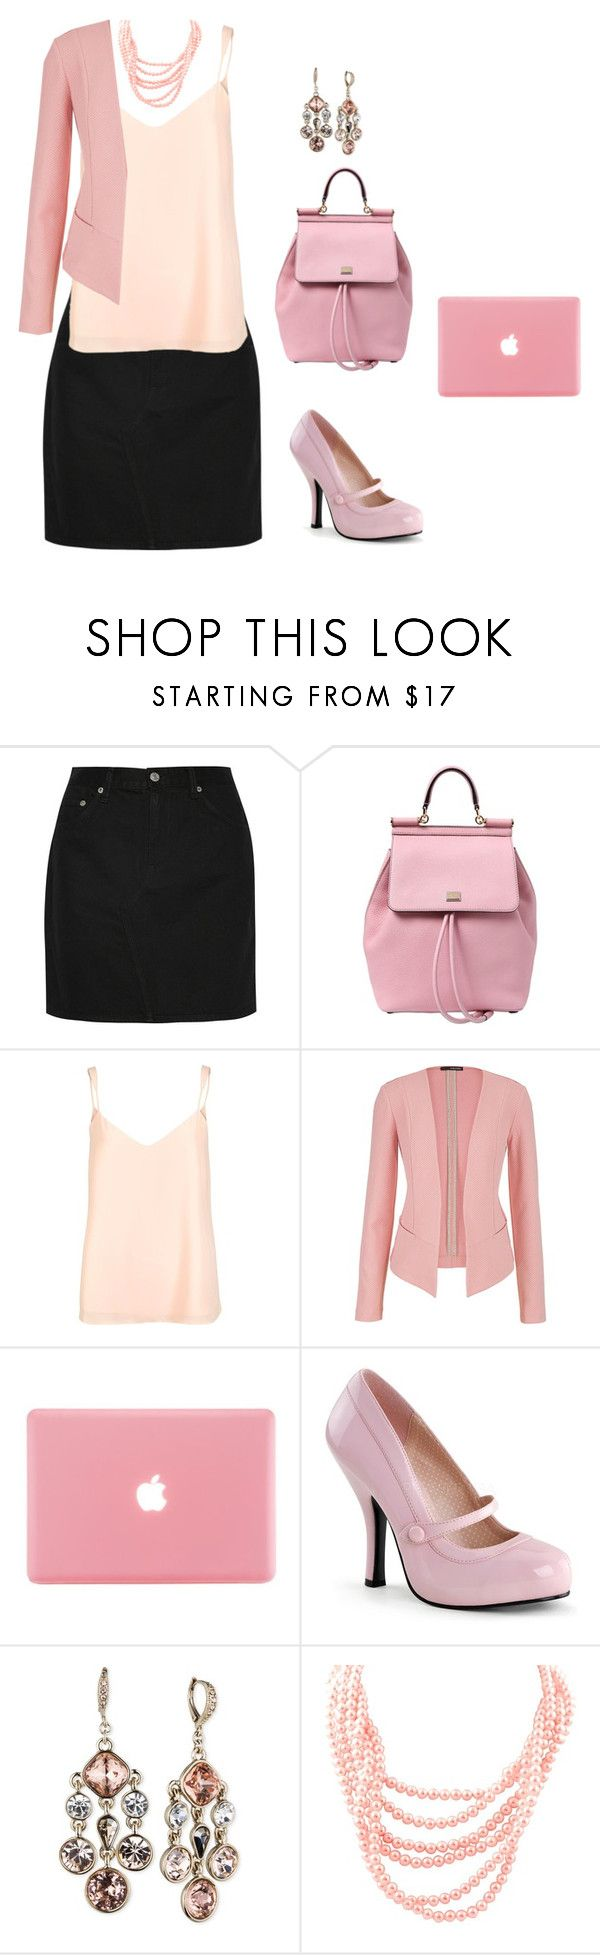 """When u watch legally blonde and wanna be a lawyer"" by maddmae ❤ liked on Polyvore featuring rag & bone, Dolce&Gabbana, River Island, maurices and Givenchy"